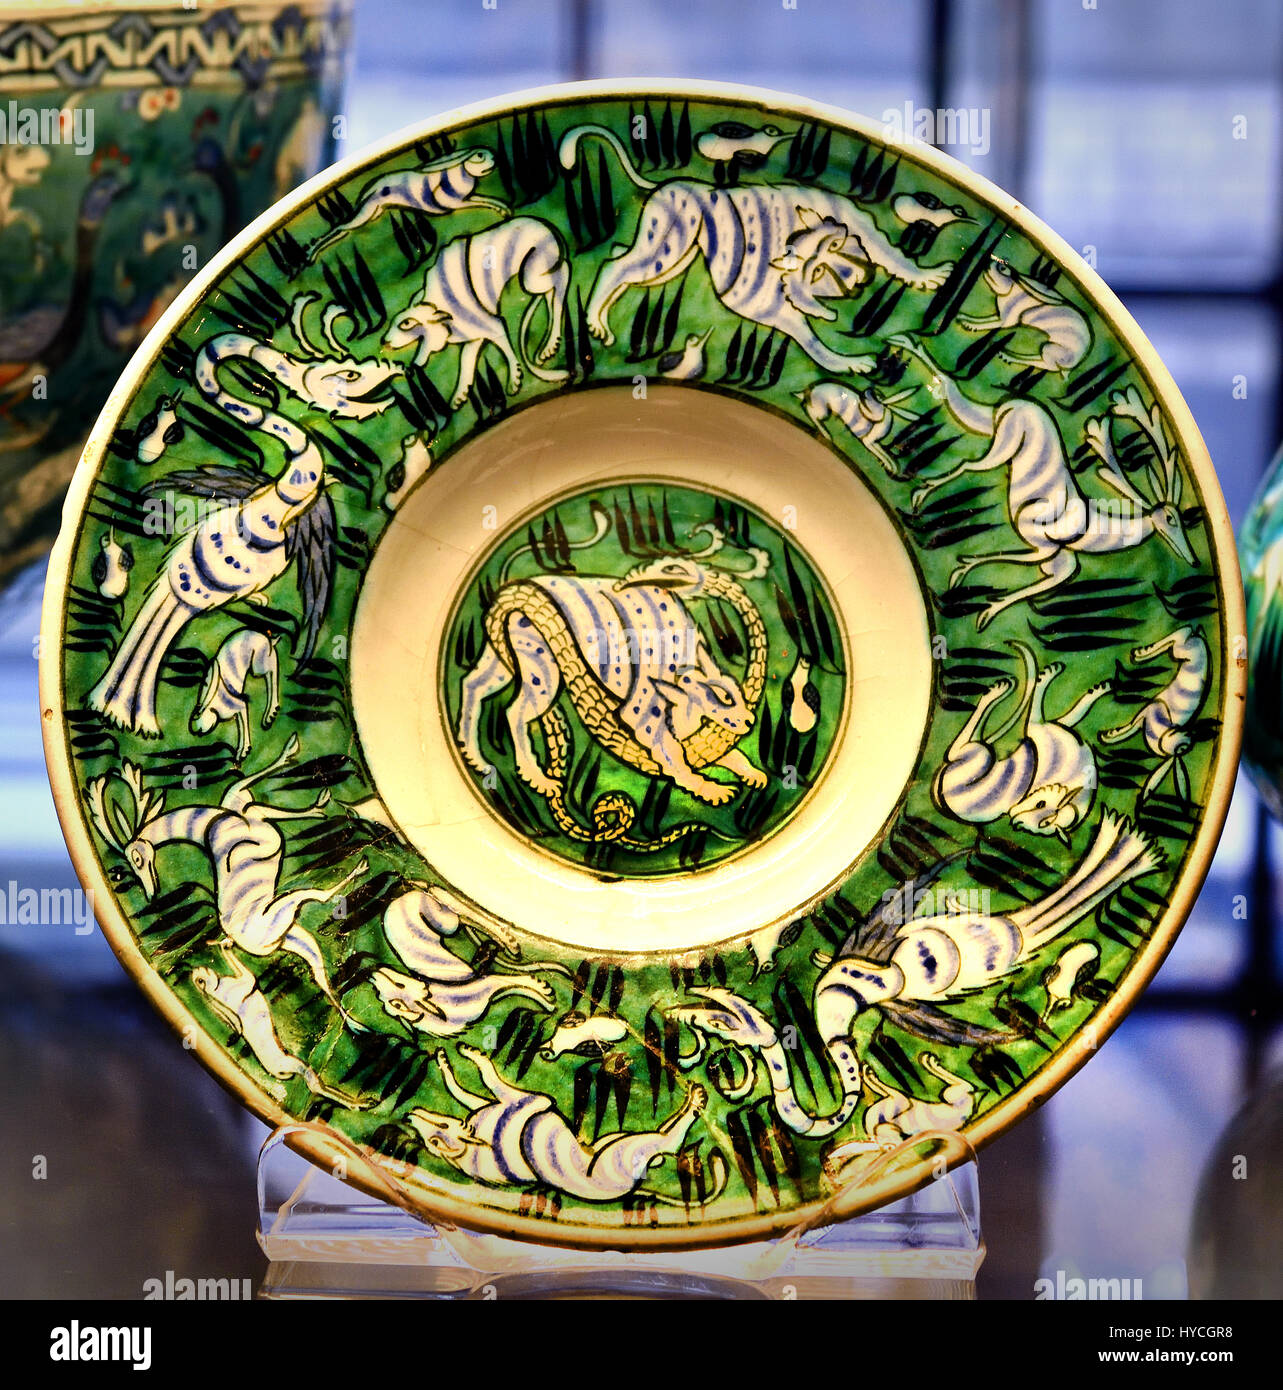 Dish decorated with real and fantastic creatures including a Simurgh ( Iranian mythical bird ) Iznik Ottoman dynasty - Stock Image